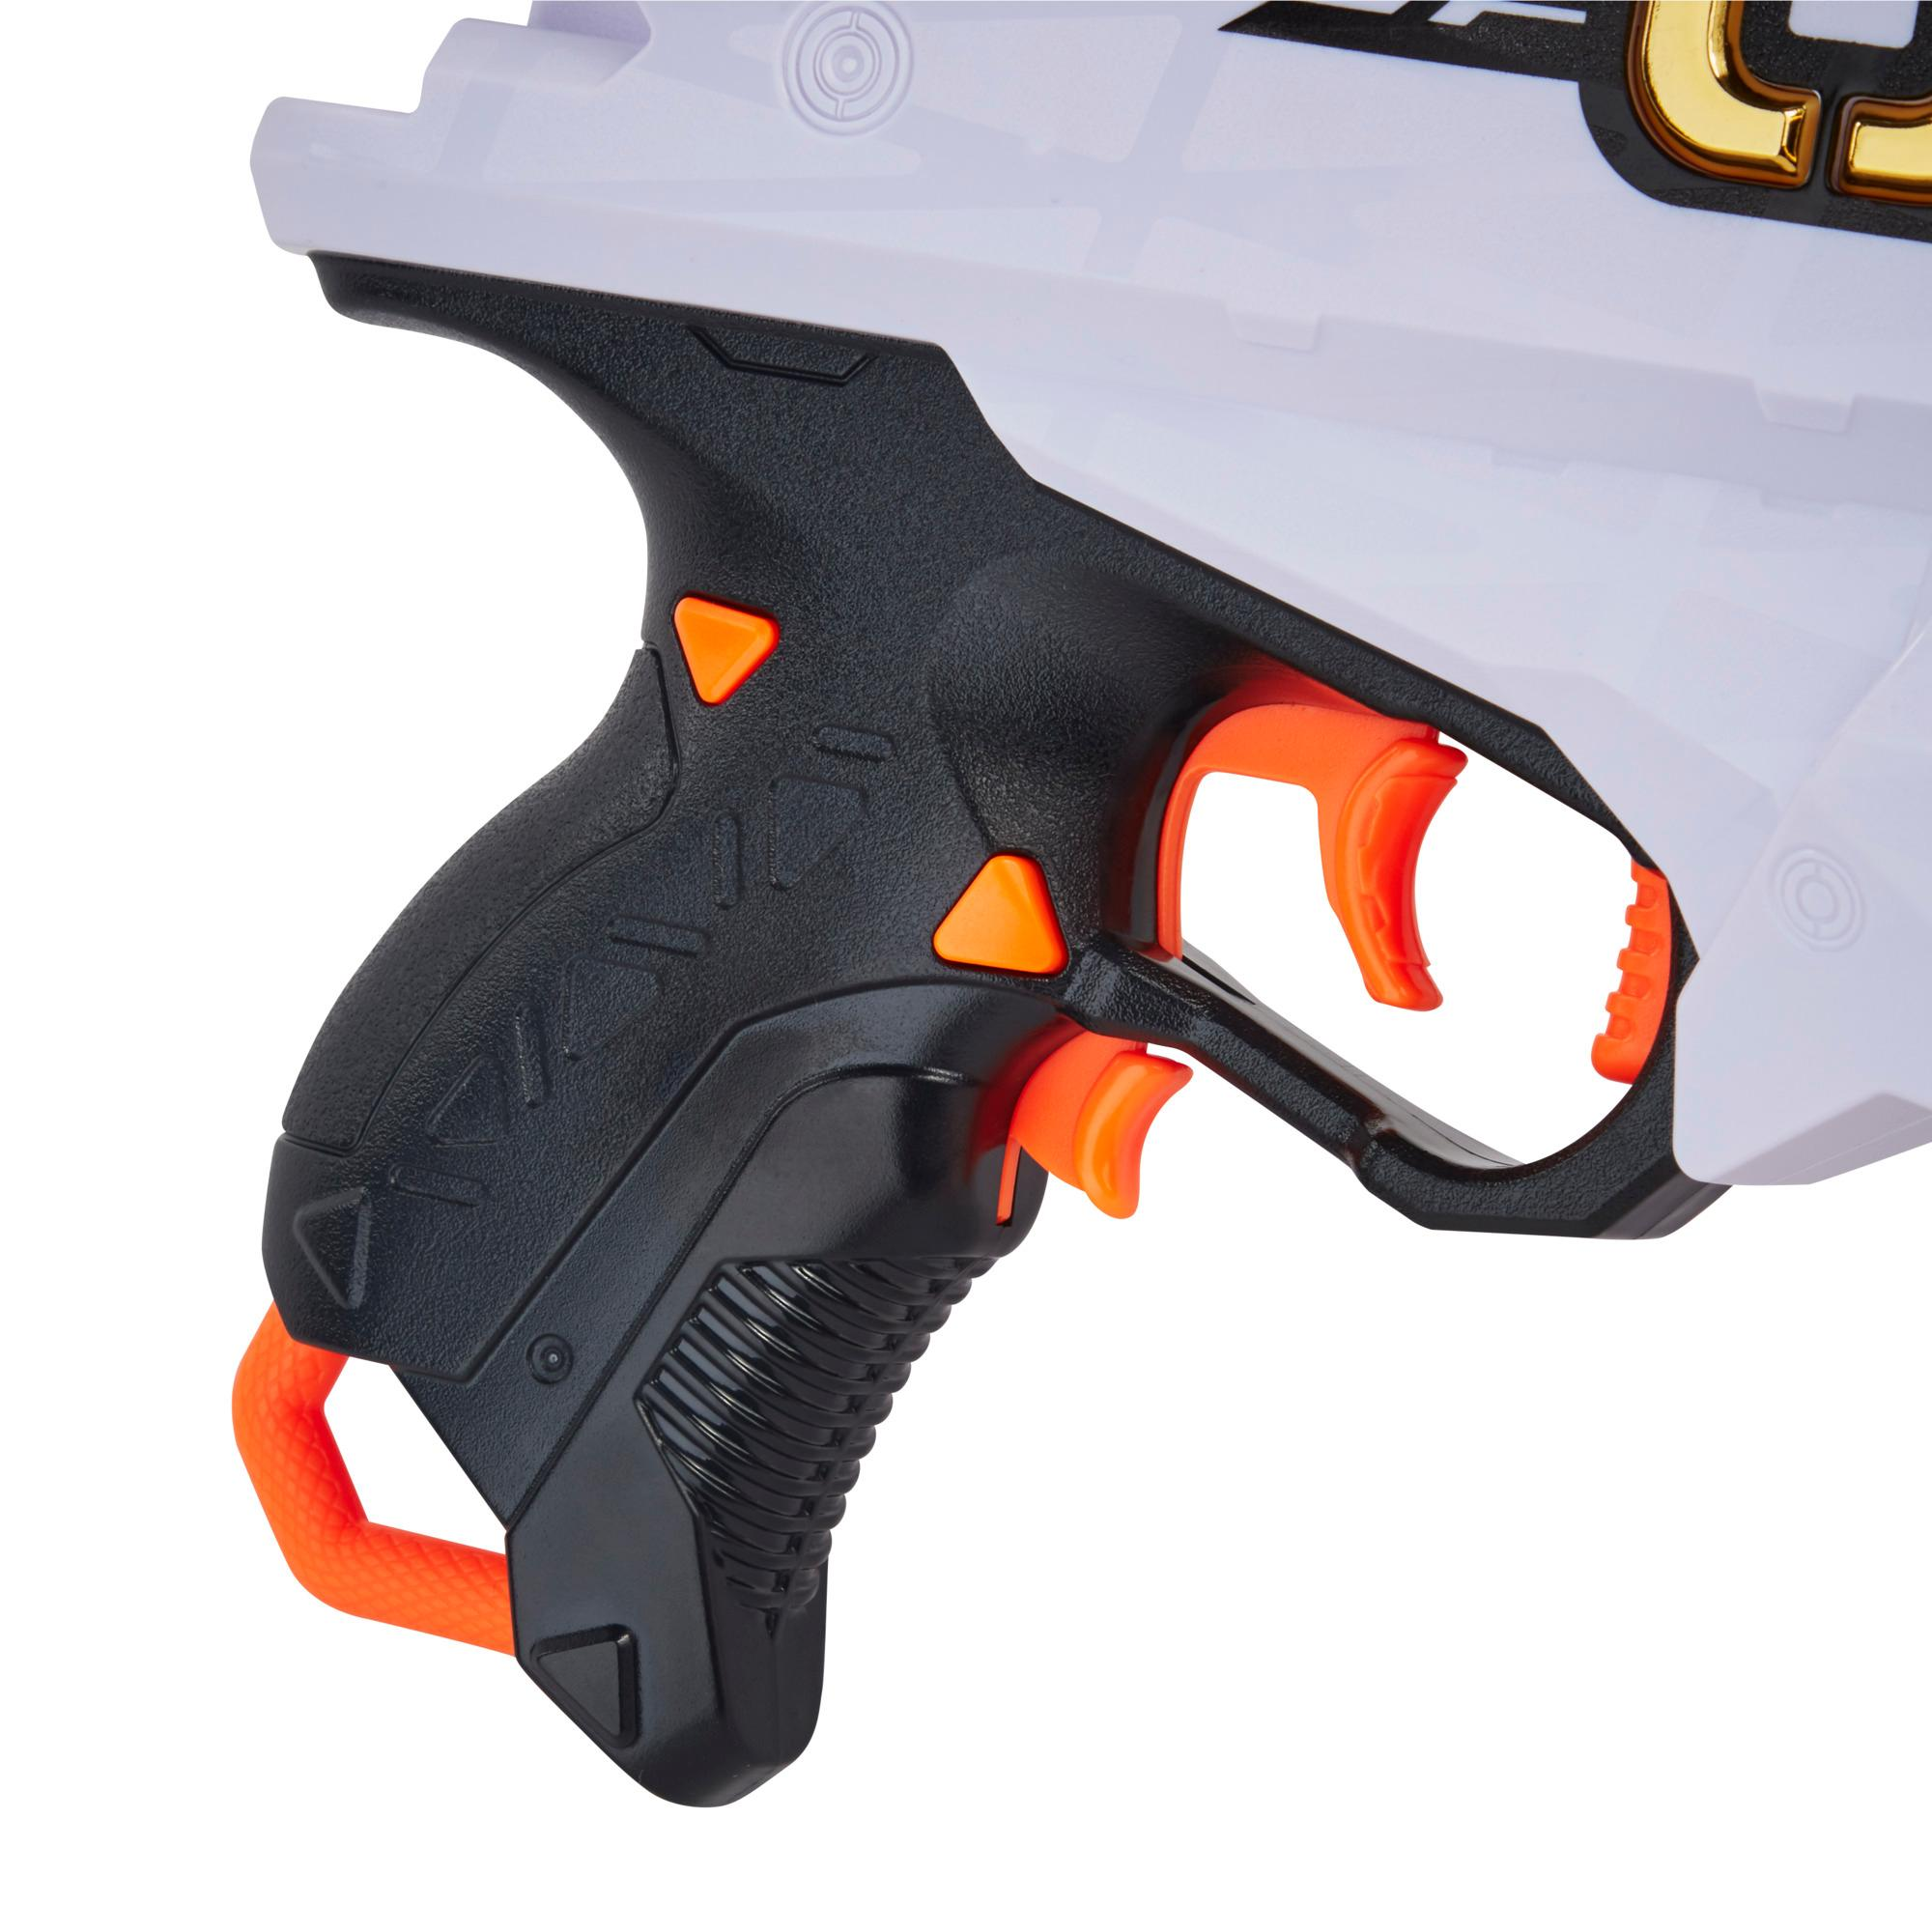 Nerf Ultra Amp Motorized Blaster, 6-Dart Clip, 6 Darts, Compatible Only with Nerf Ultra Darts